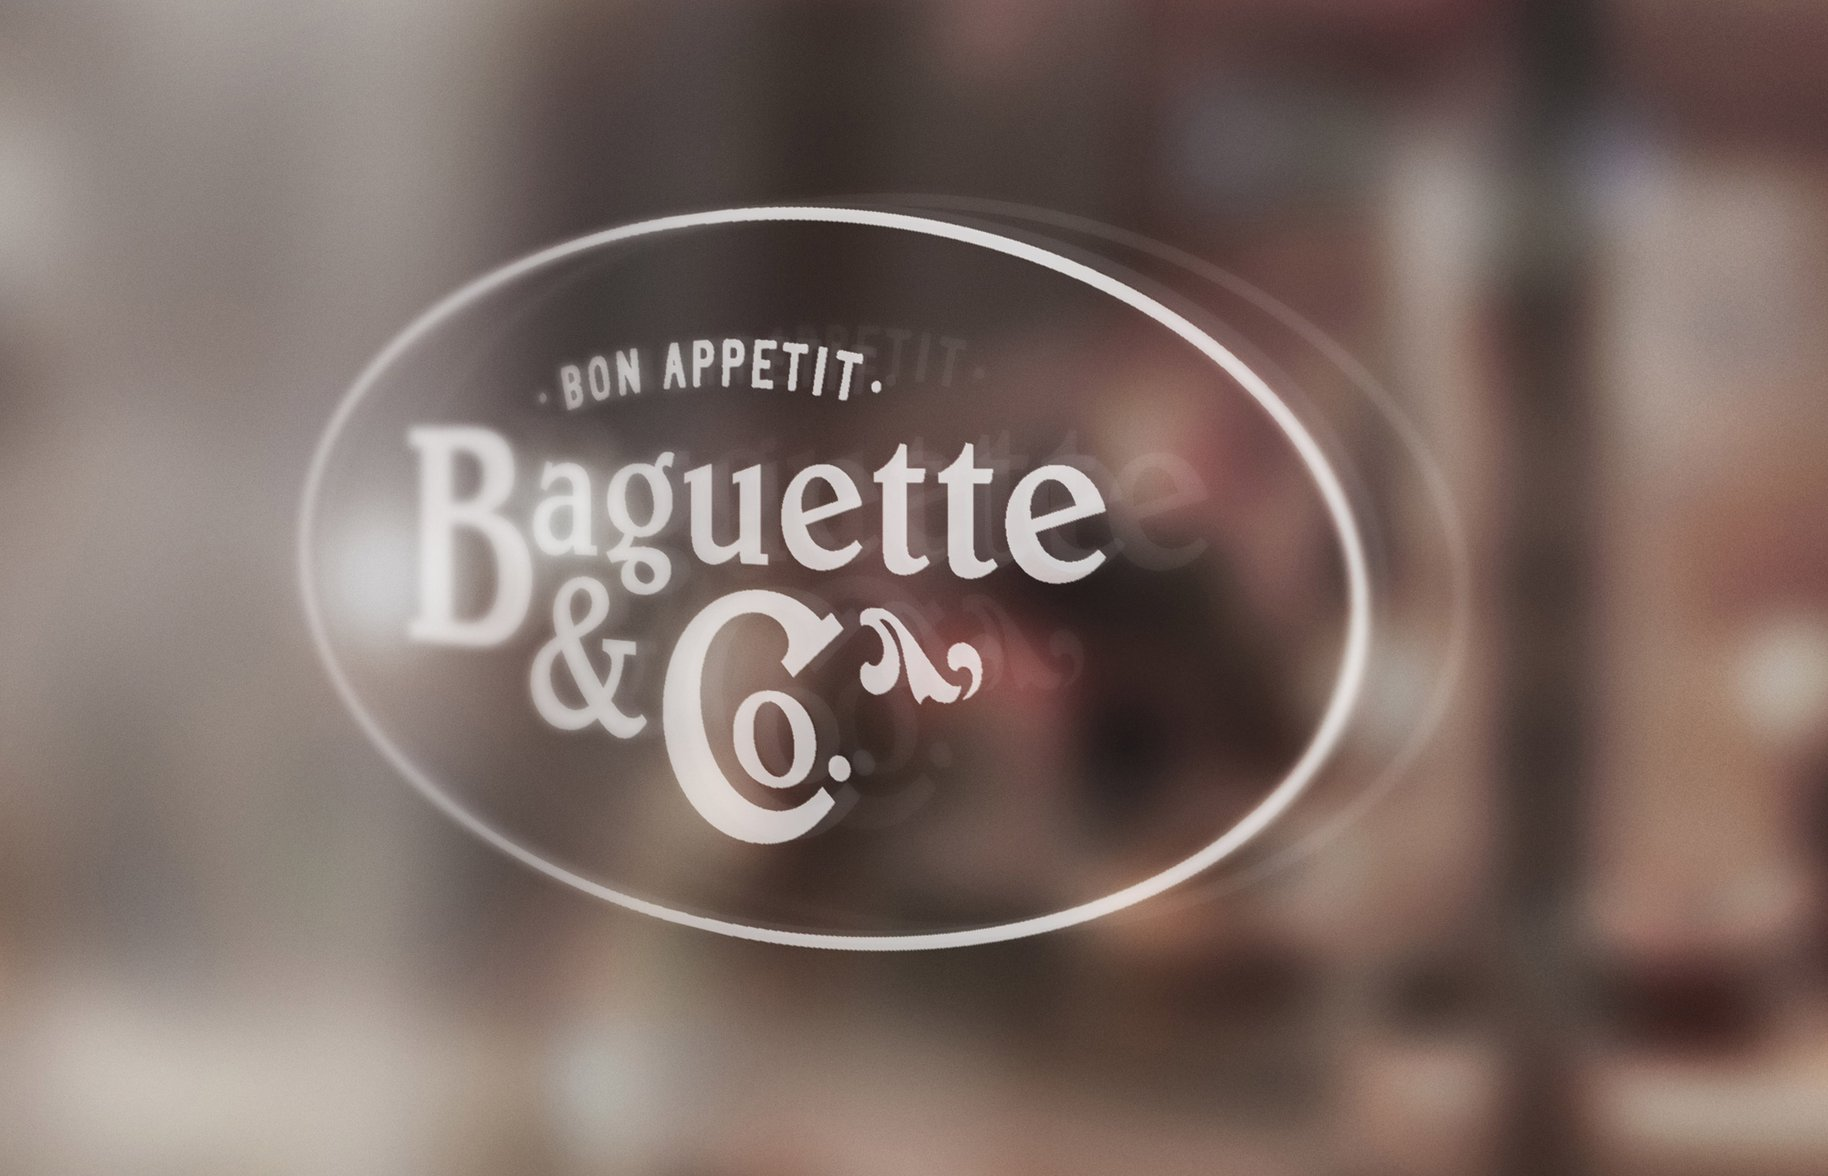 Baguette & Co logo photography